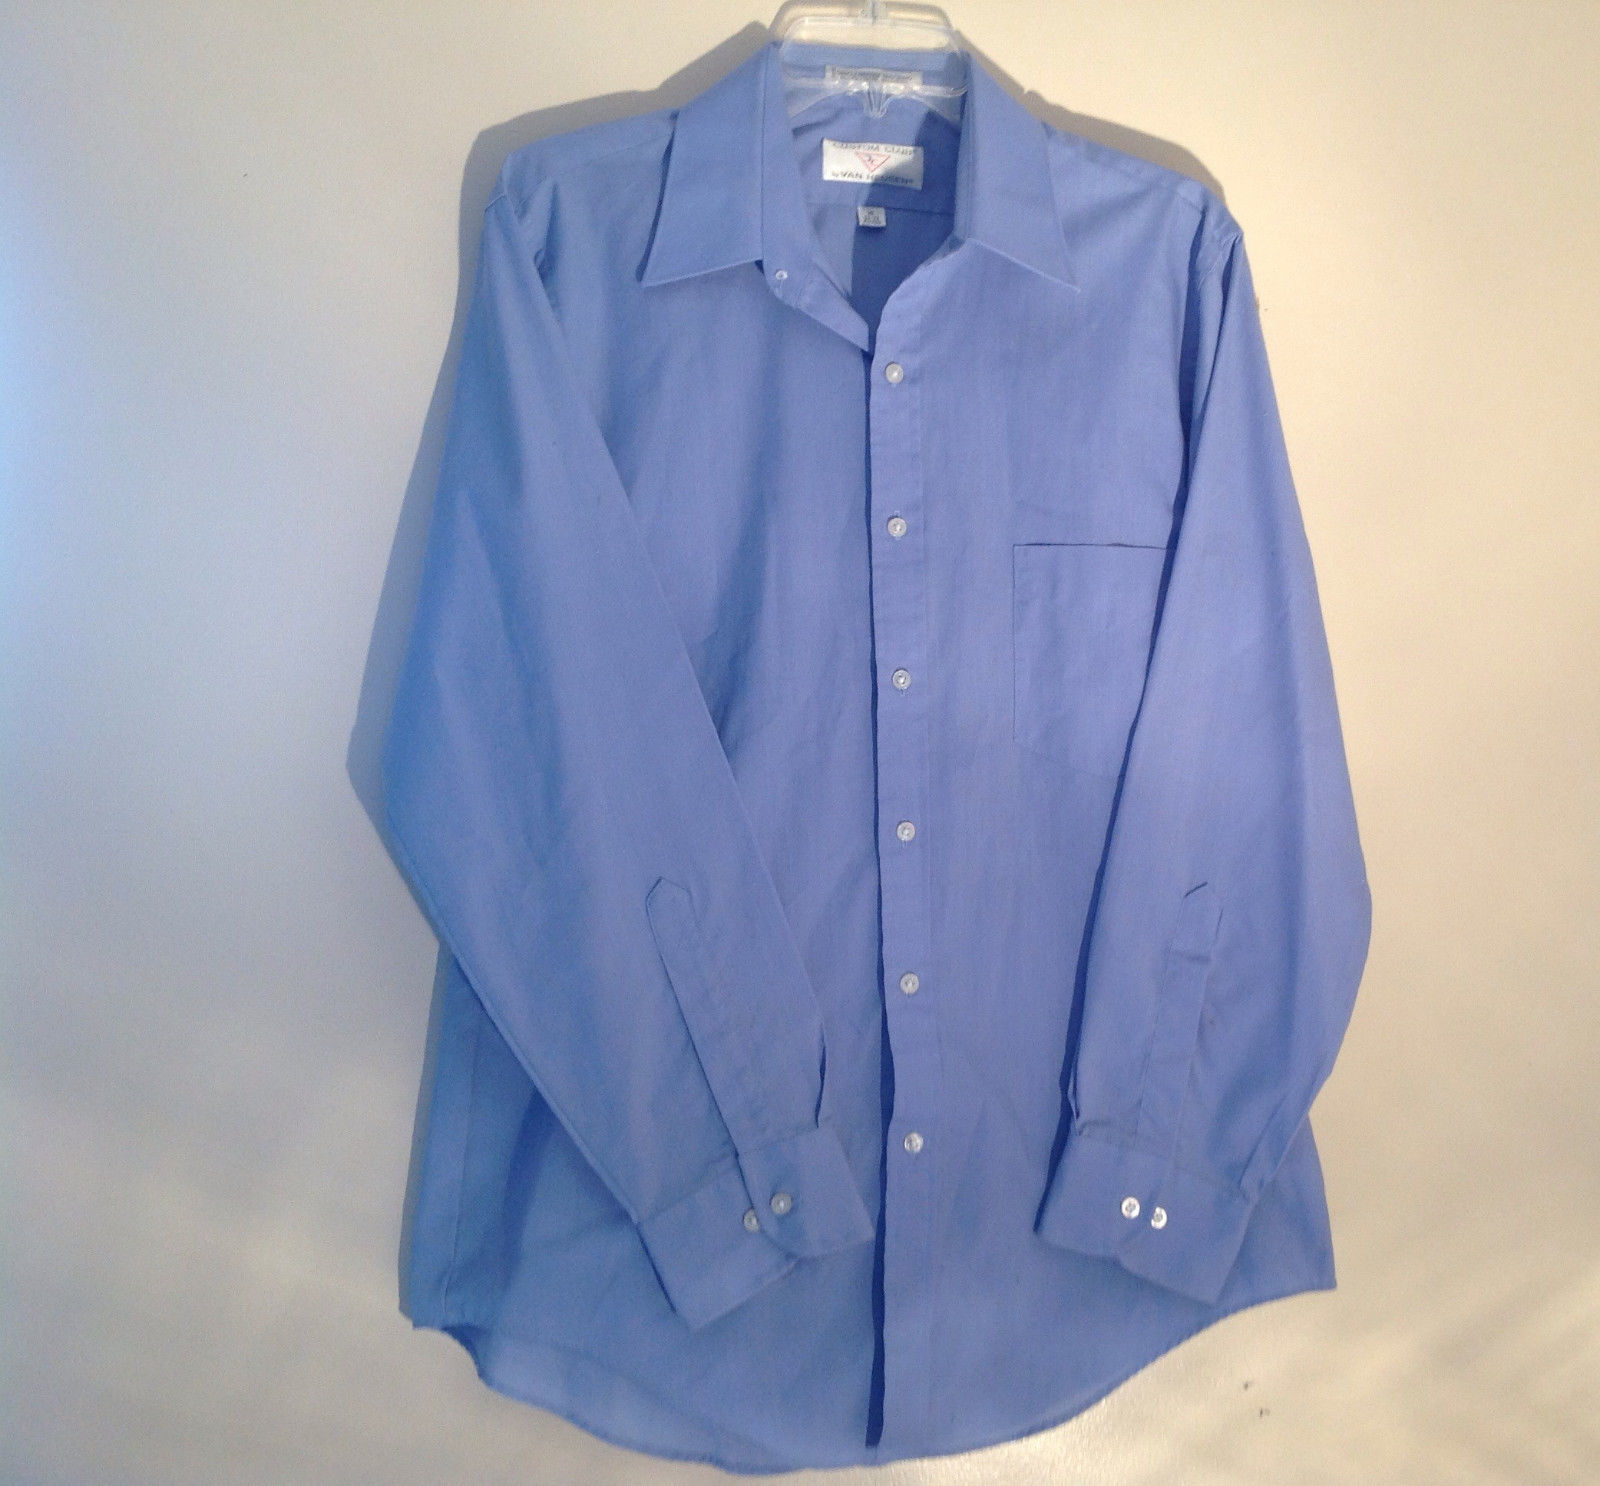 Light Blue Van Heusen Collared Button Up Dress Shirt Pocket on Chest Size 16